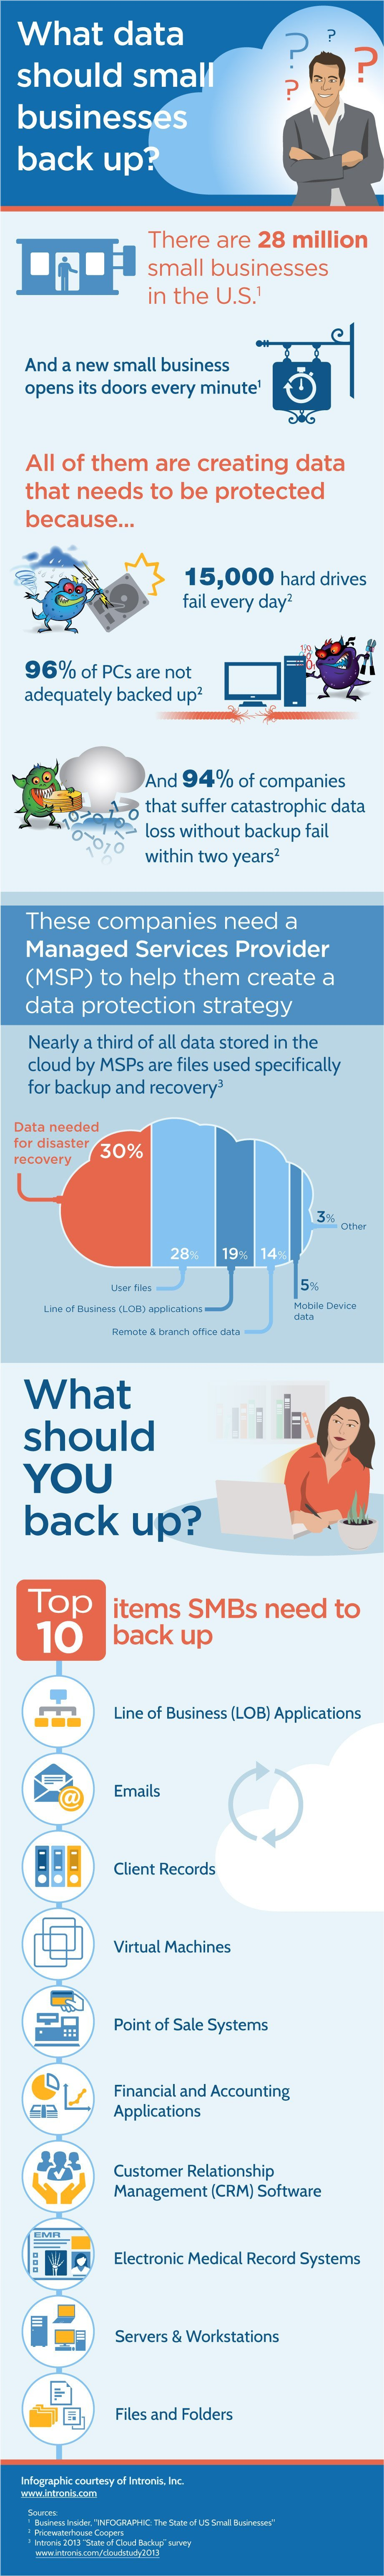 Infographic_WhatToBackup- Sygnvs